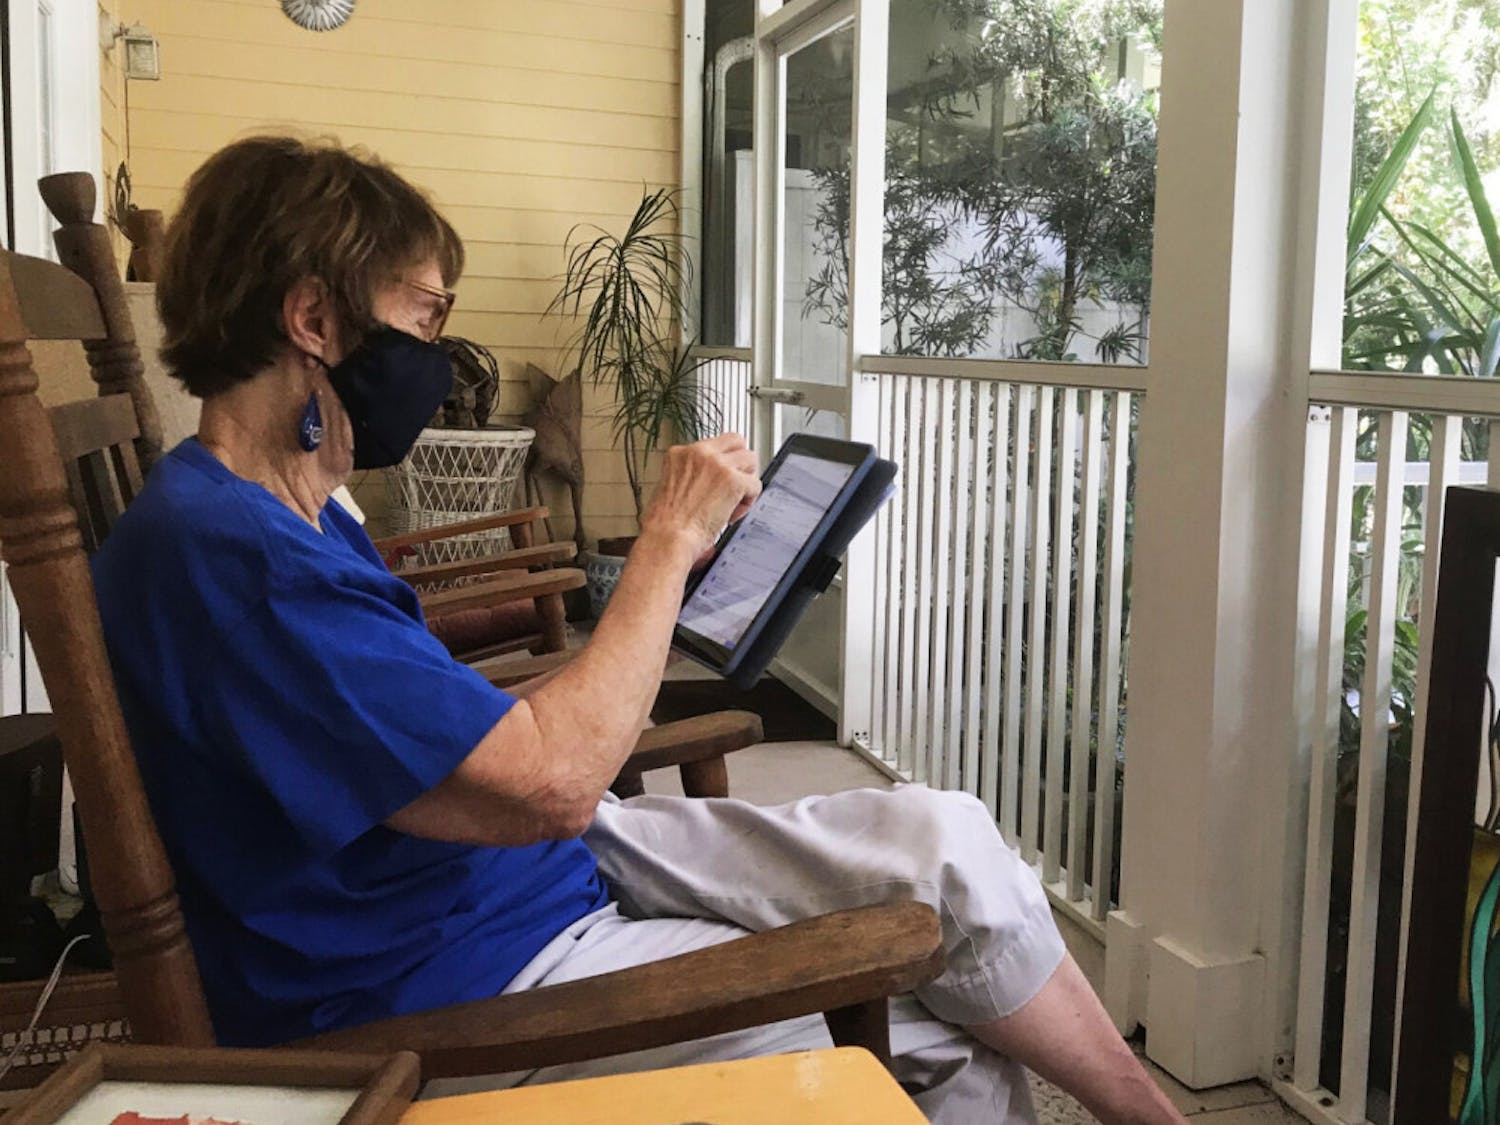 Patsy Nelms, an 83-year-old resident of Oak Hammock, is seen using her iPad on her back porch Sunday, Oct. 11, 2020.Patsy occasionally invites friends to sit on her porch and share her homemade, frosty peppermint ice cream — a Patsy Nelms staple, which she offers within minutes of entering her home.